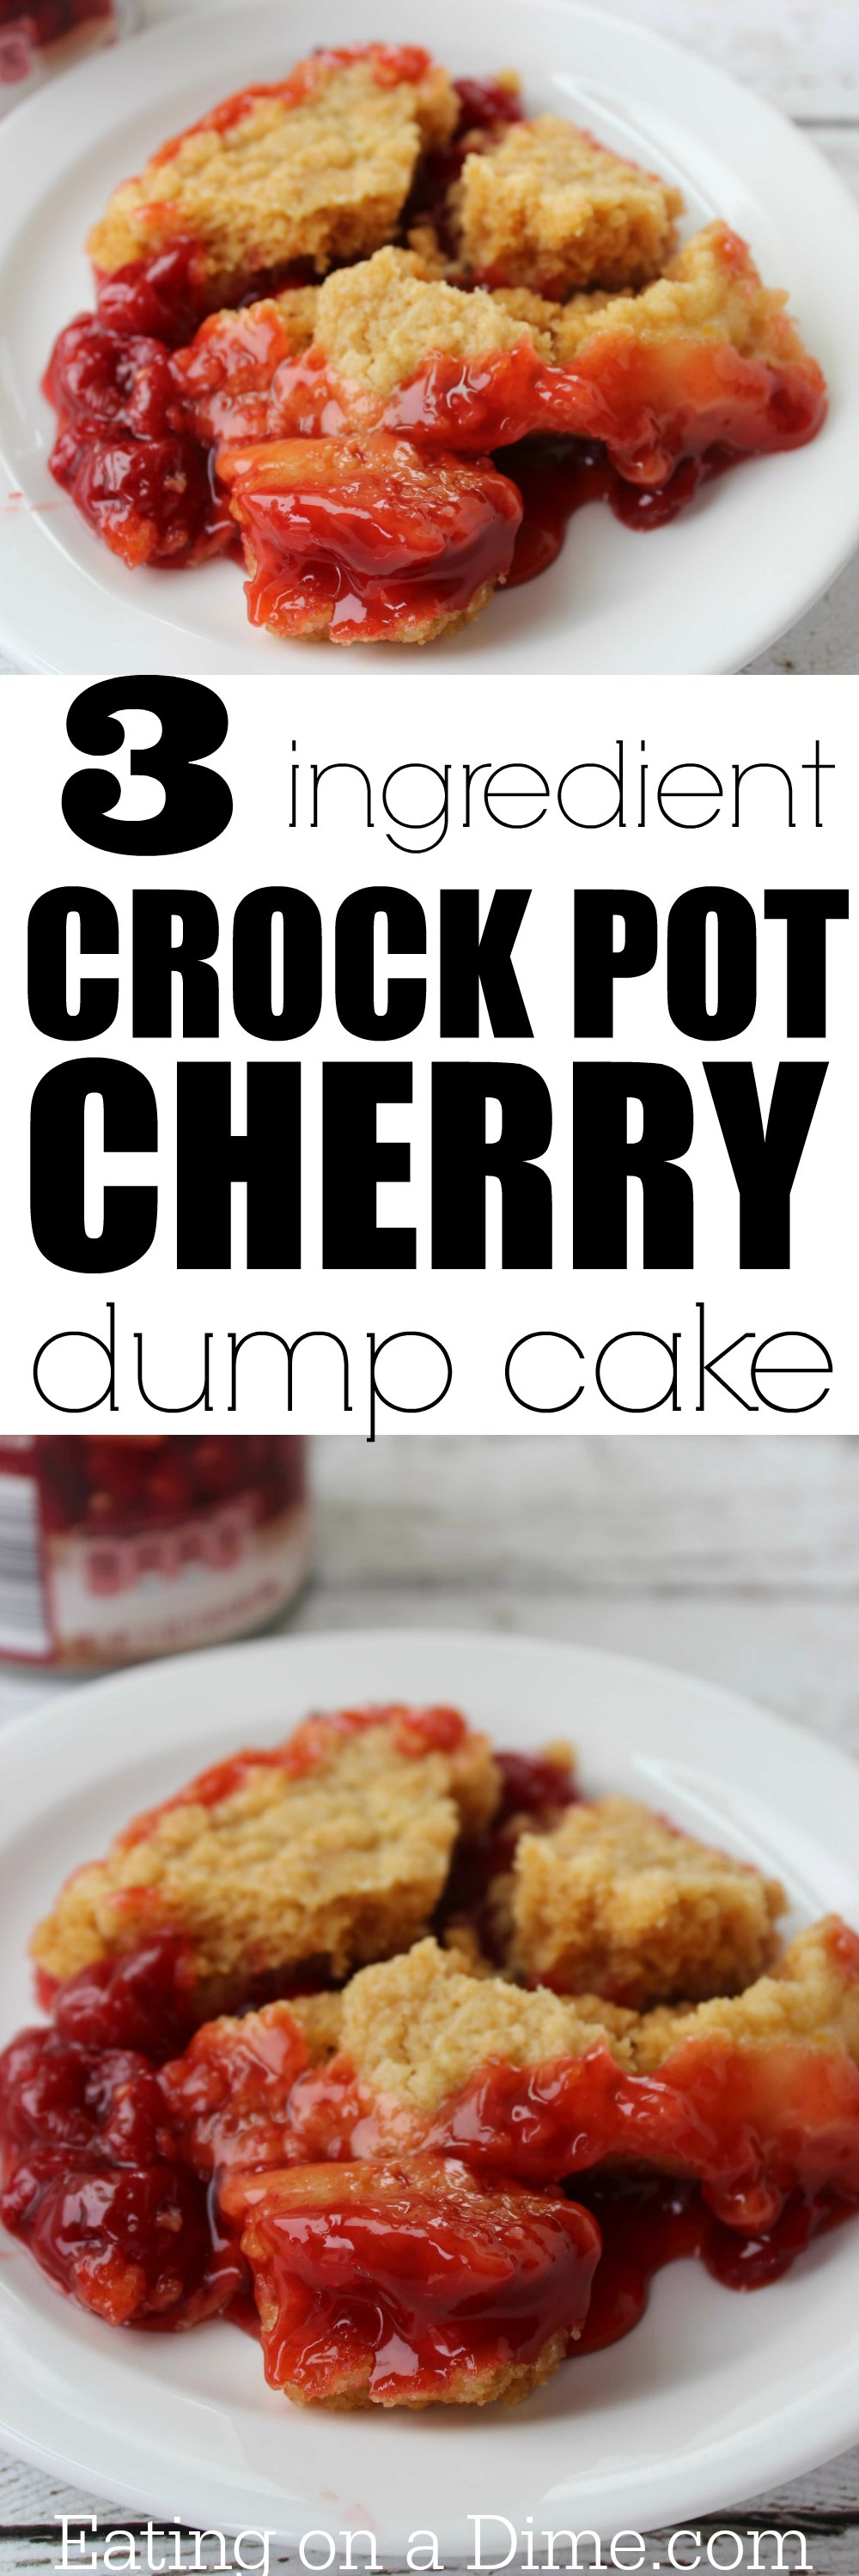 Easy Cherry Crumble Cake With Cake Mix